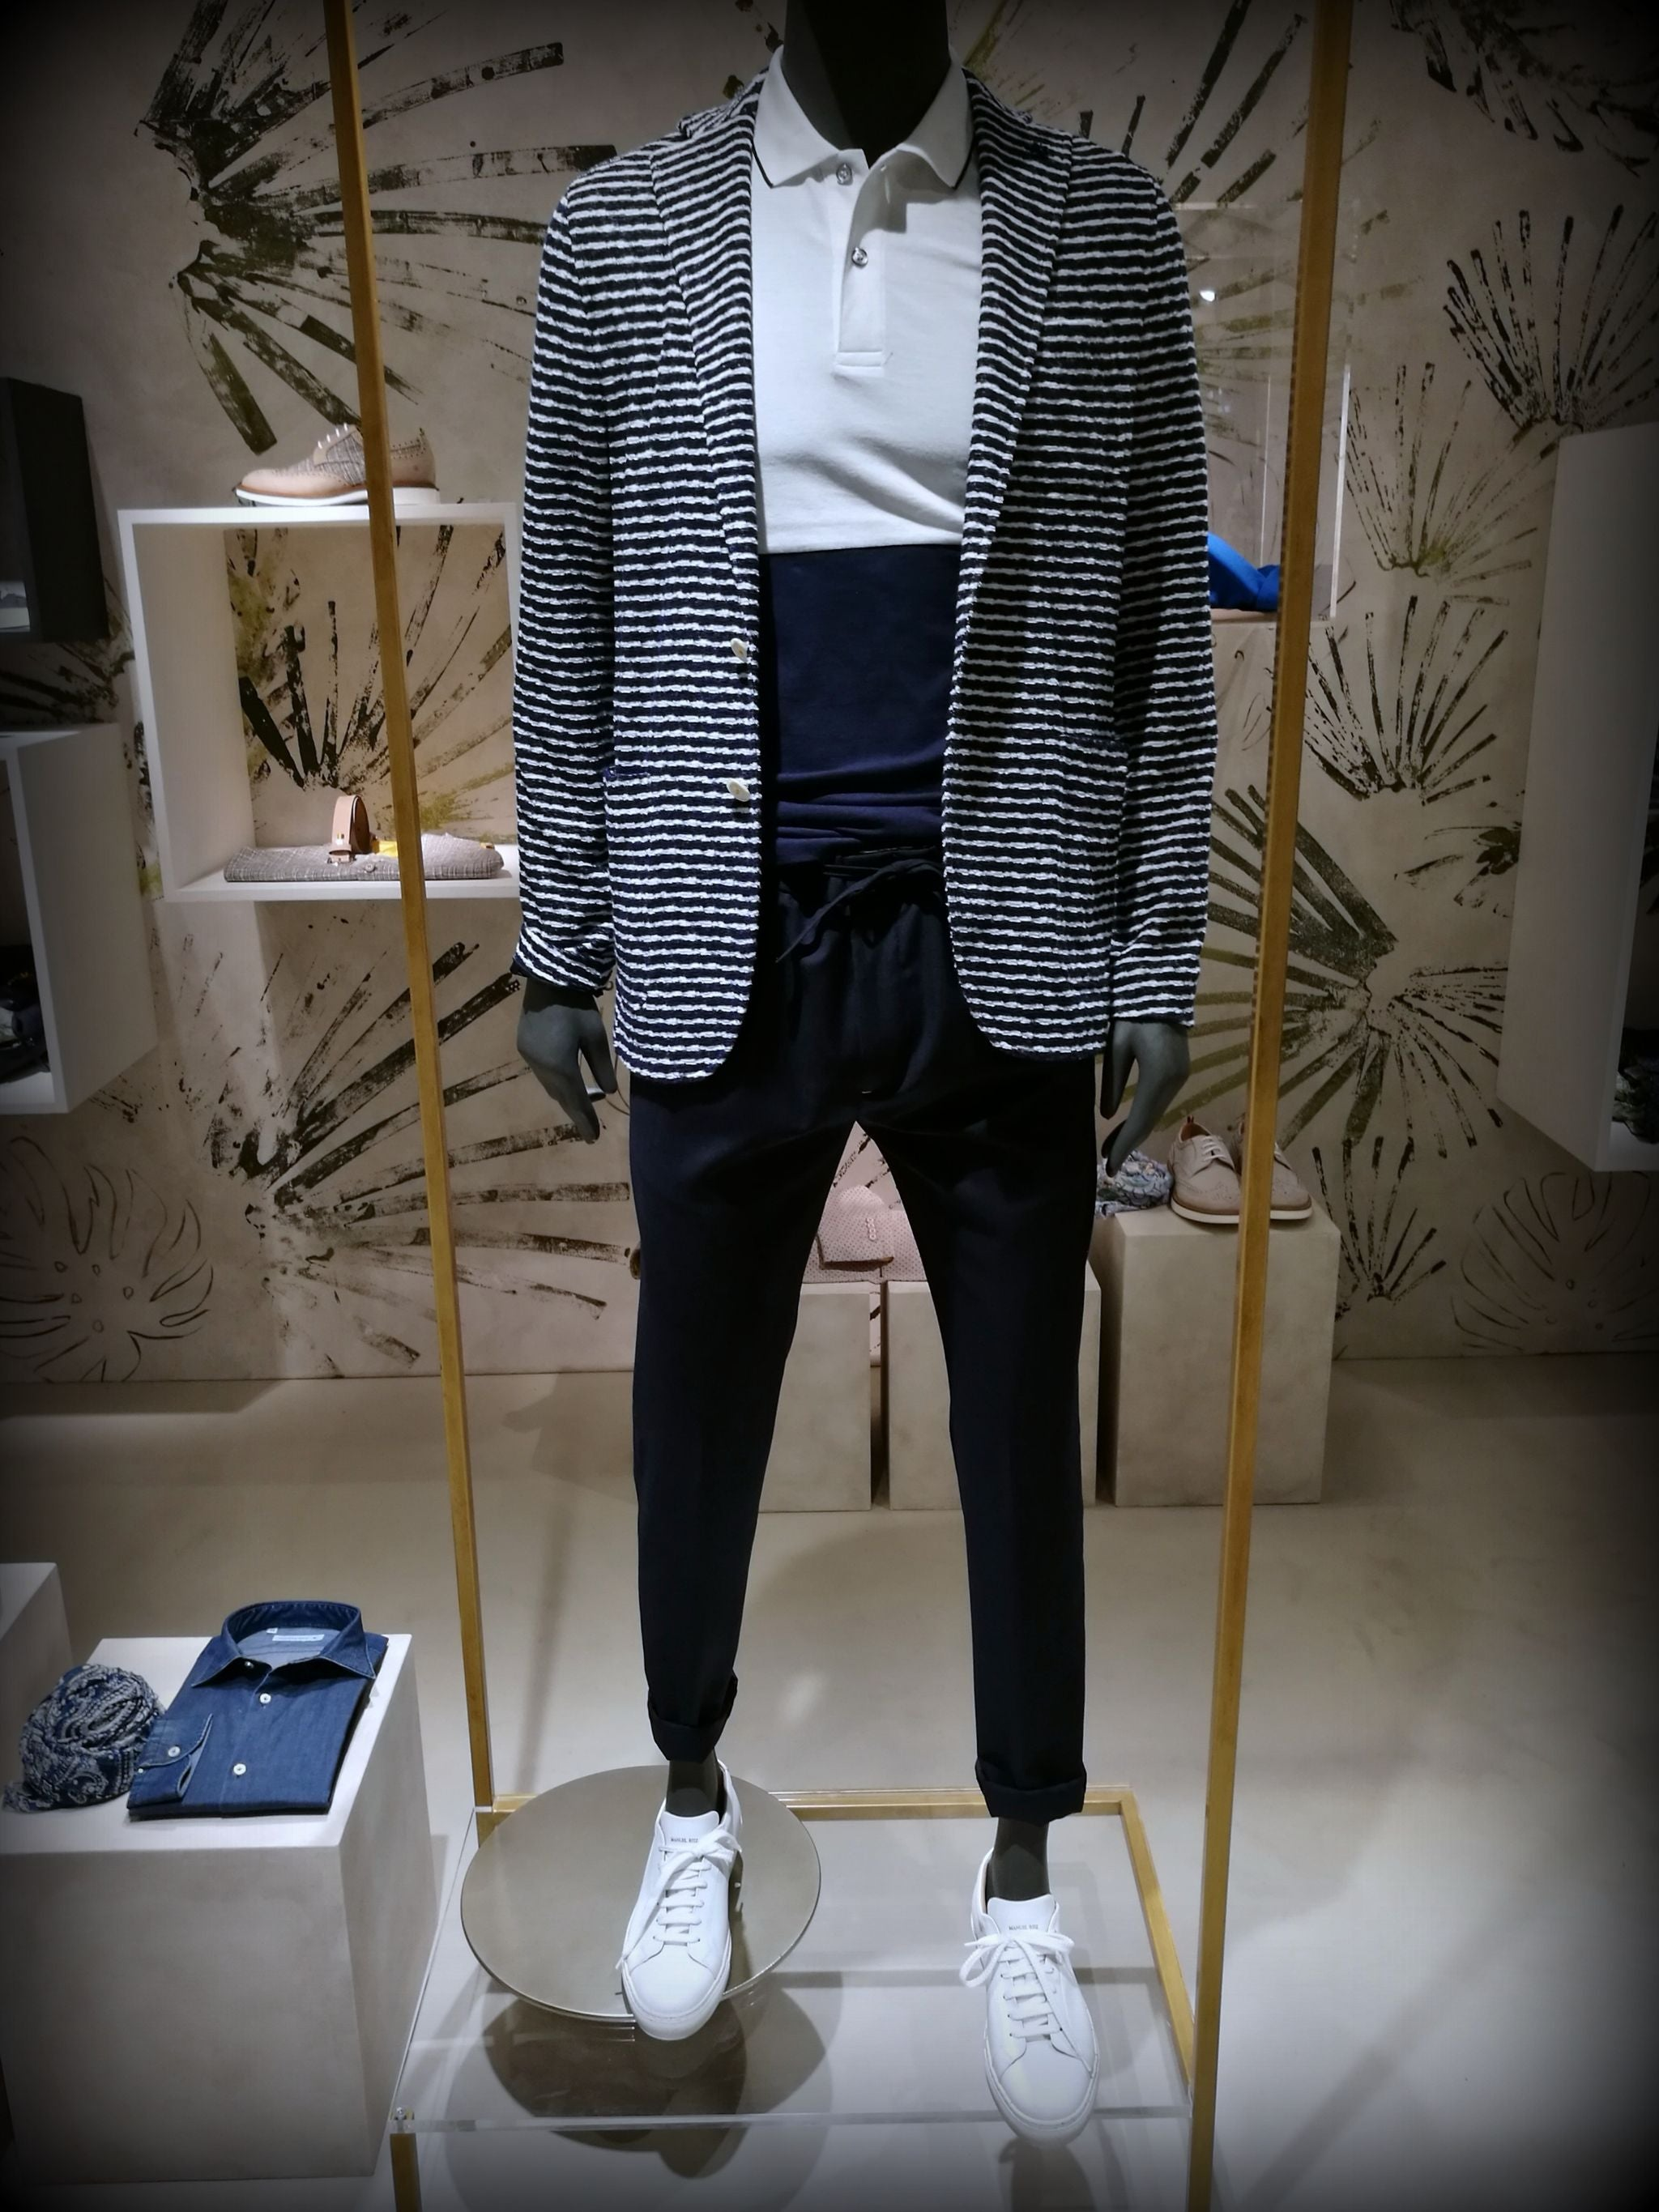 Pitti Uomo 90 trends- blue and stripes